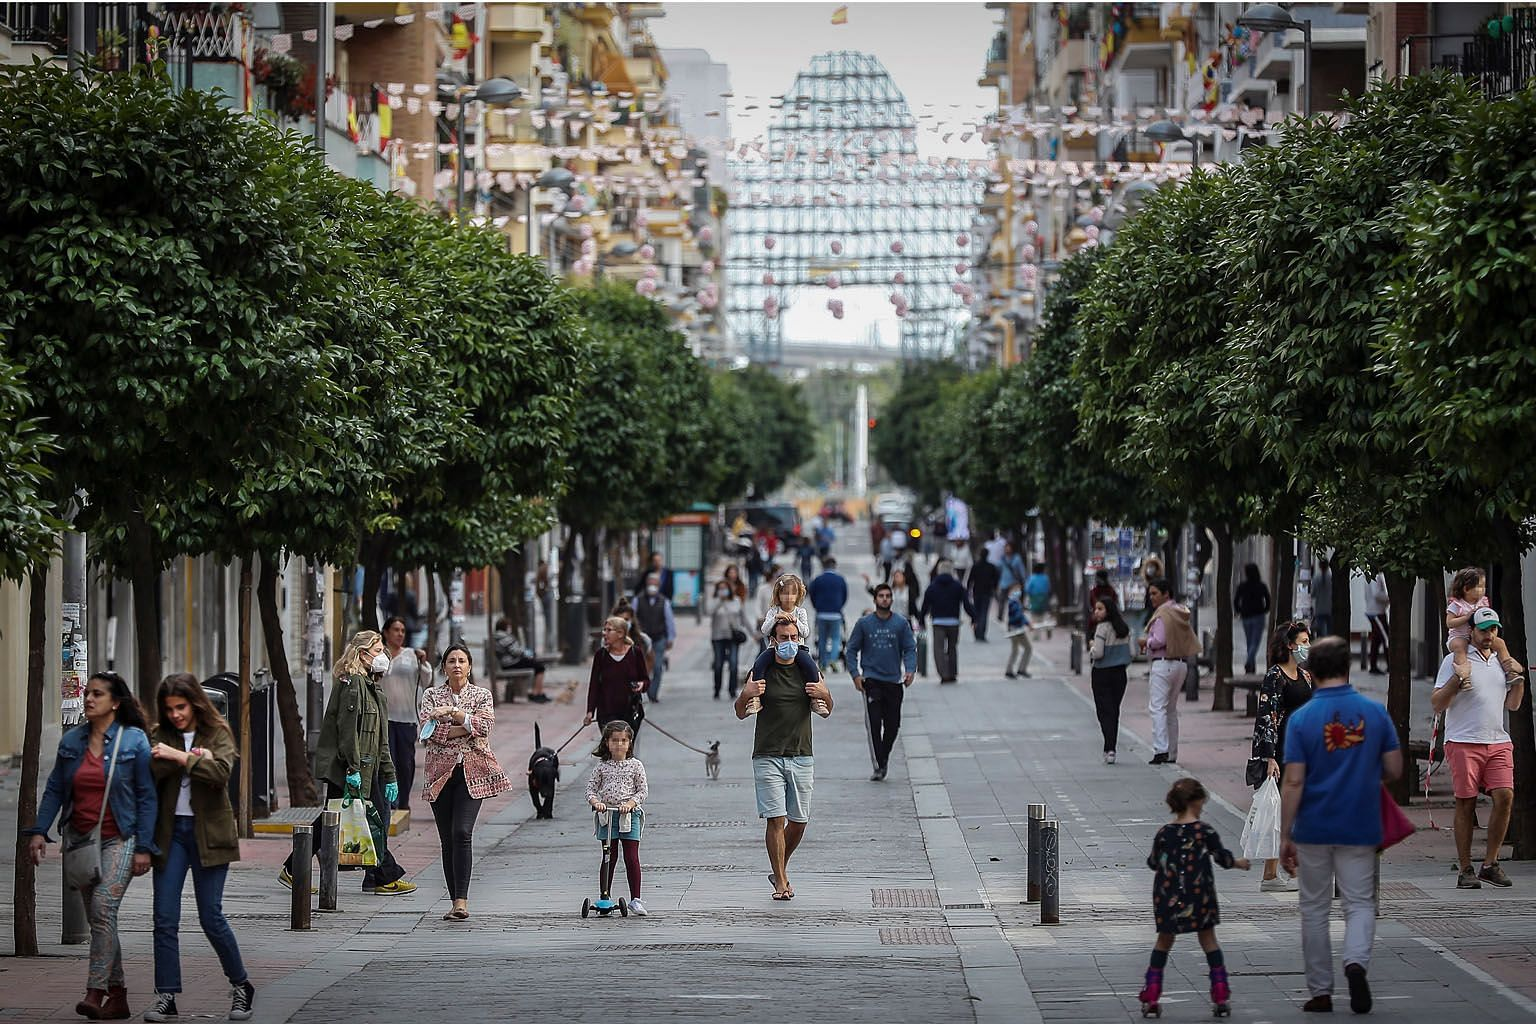 People walking down the San Jacinto street in the Spanish city of Sevilla on April 26, the first day minors were allowed an hour's walk per day since a lockdown was ordered in March. The writer says that amid the Covid-19 pandemic, ''faith is being tested